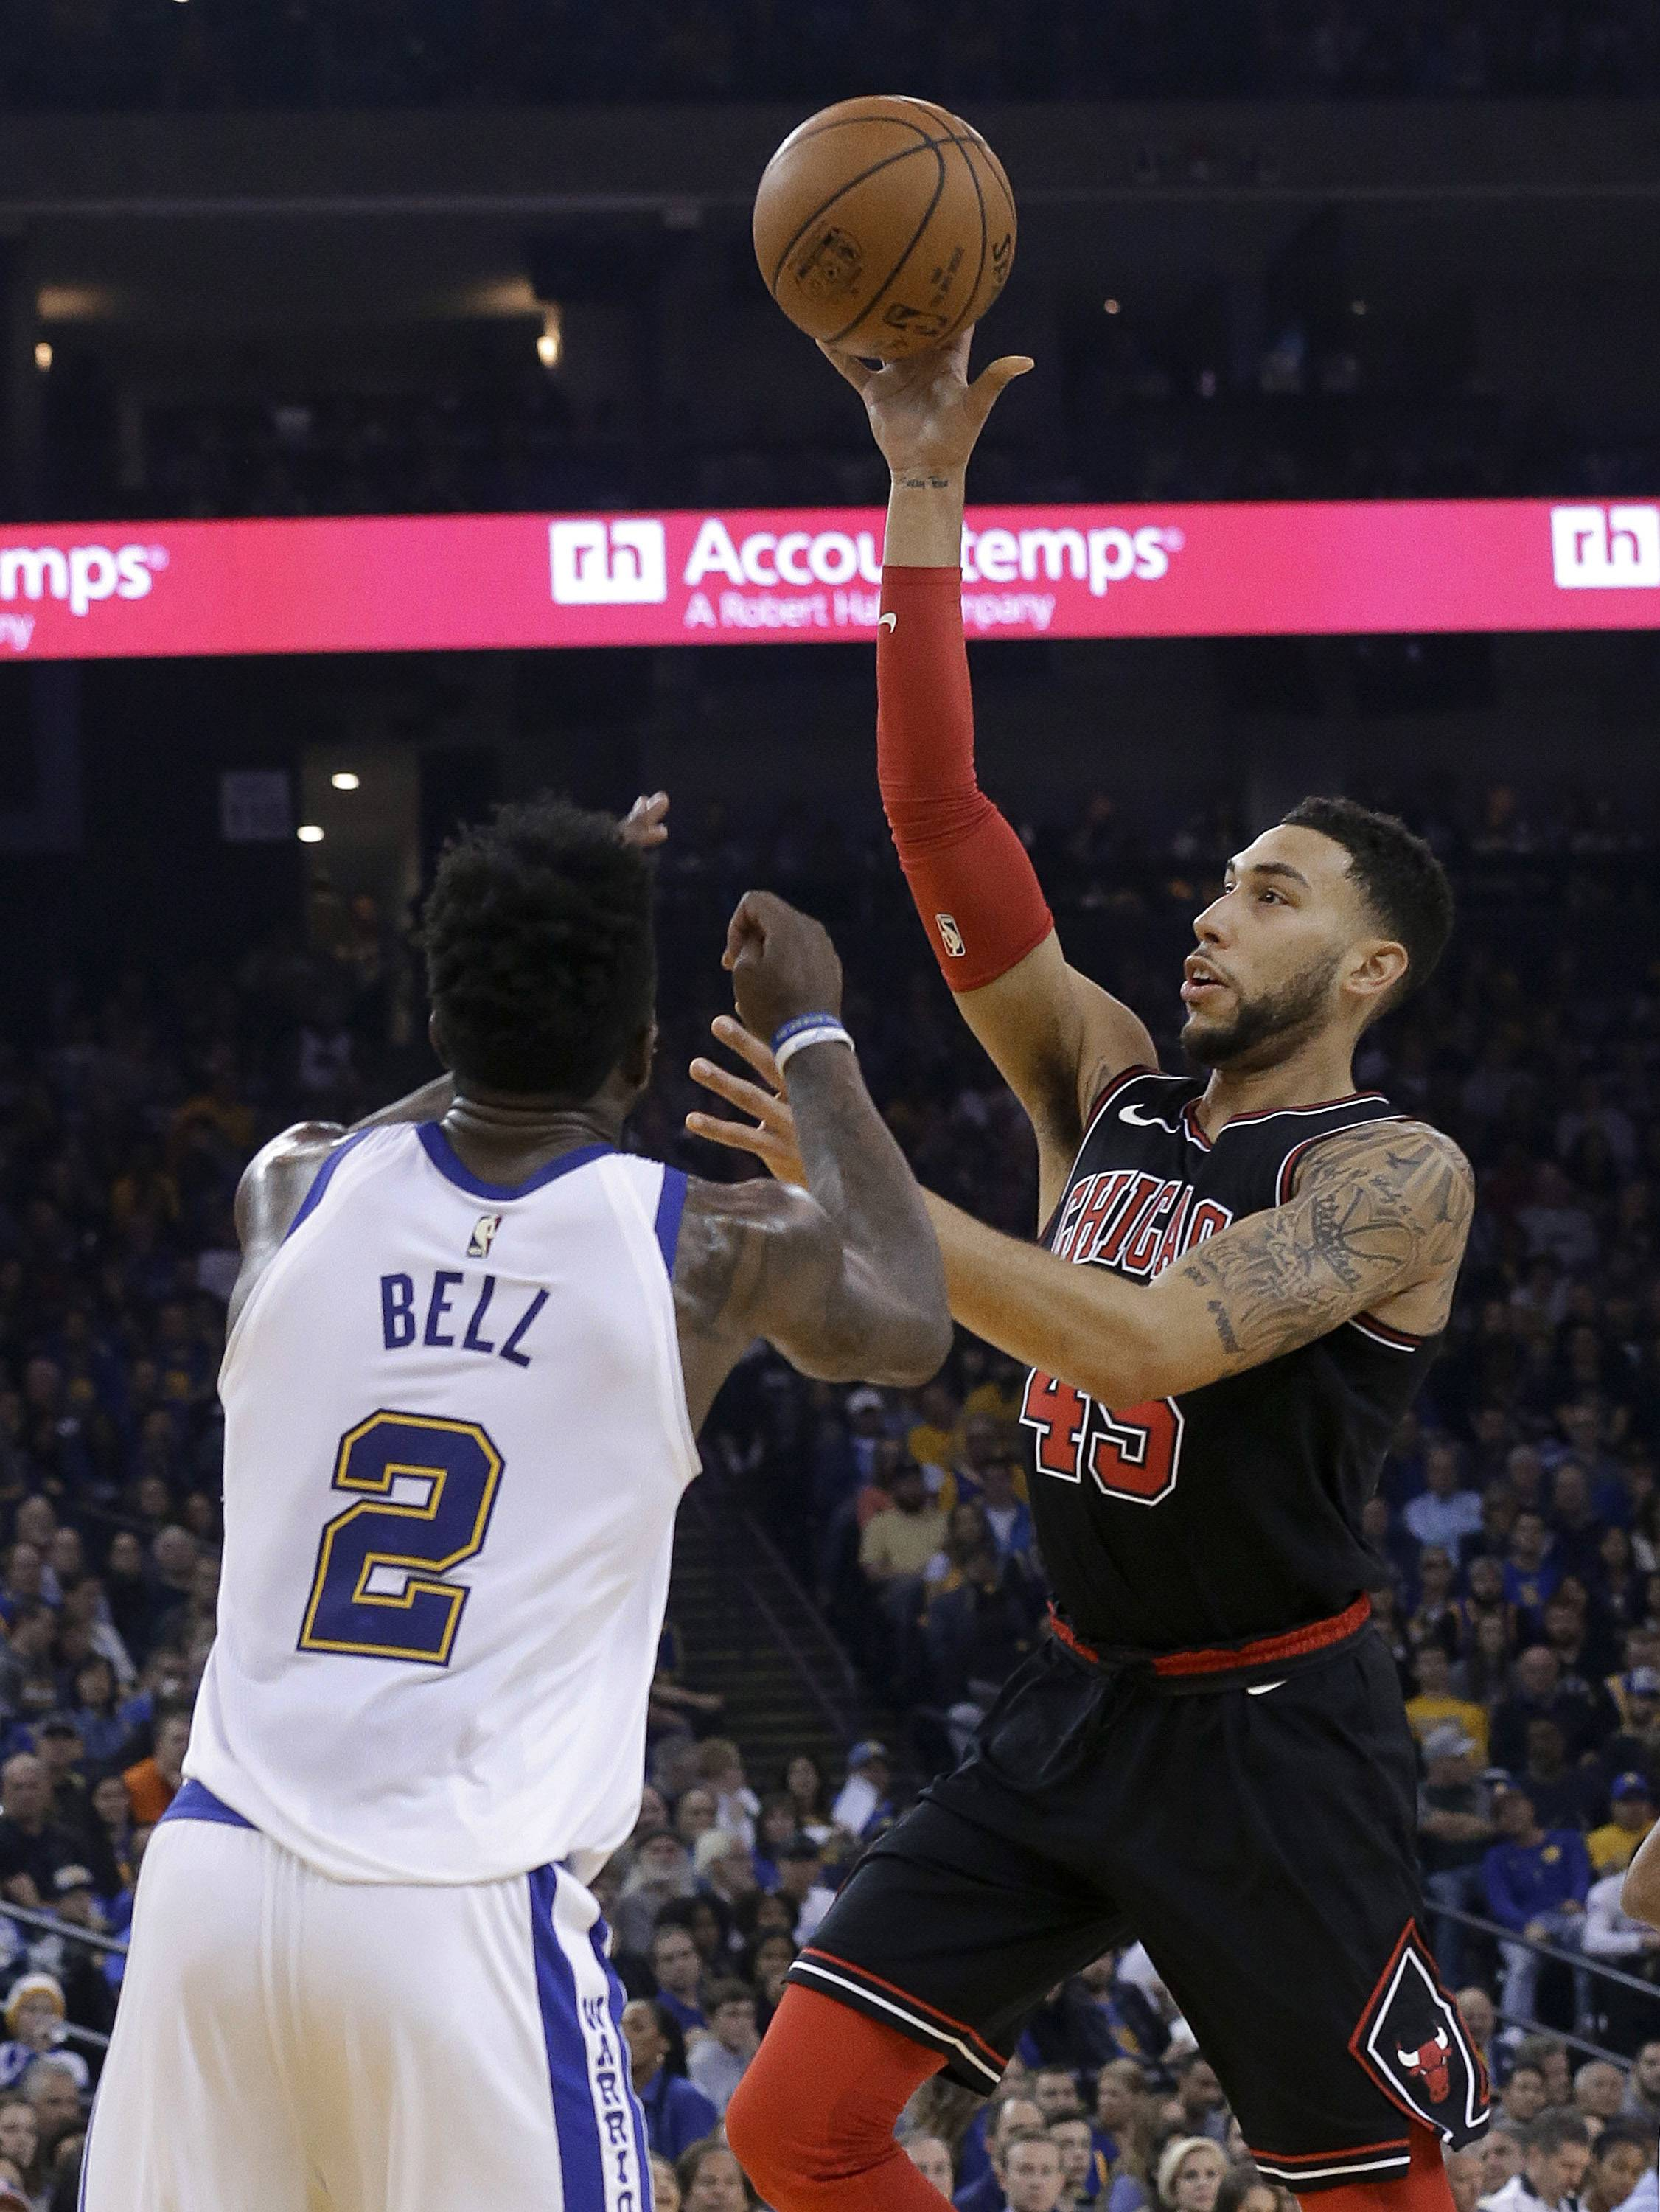 Chicago Bulls forward Denzel Valentine, right, shoots against Golden State Warriors forward Jordan Bell (2) during the first half of an NBA basketball game in Oakland, Calif., Friday, Nov. 24, 2017. (AP Photo/Jeff Chiu)